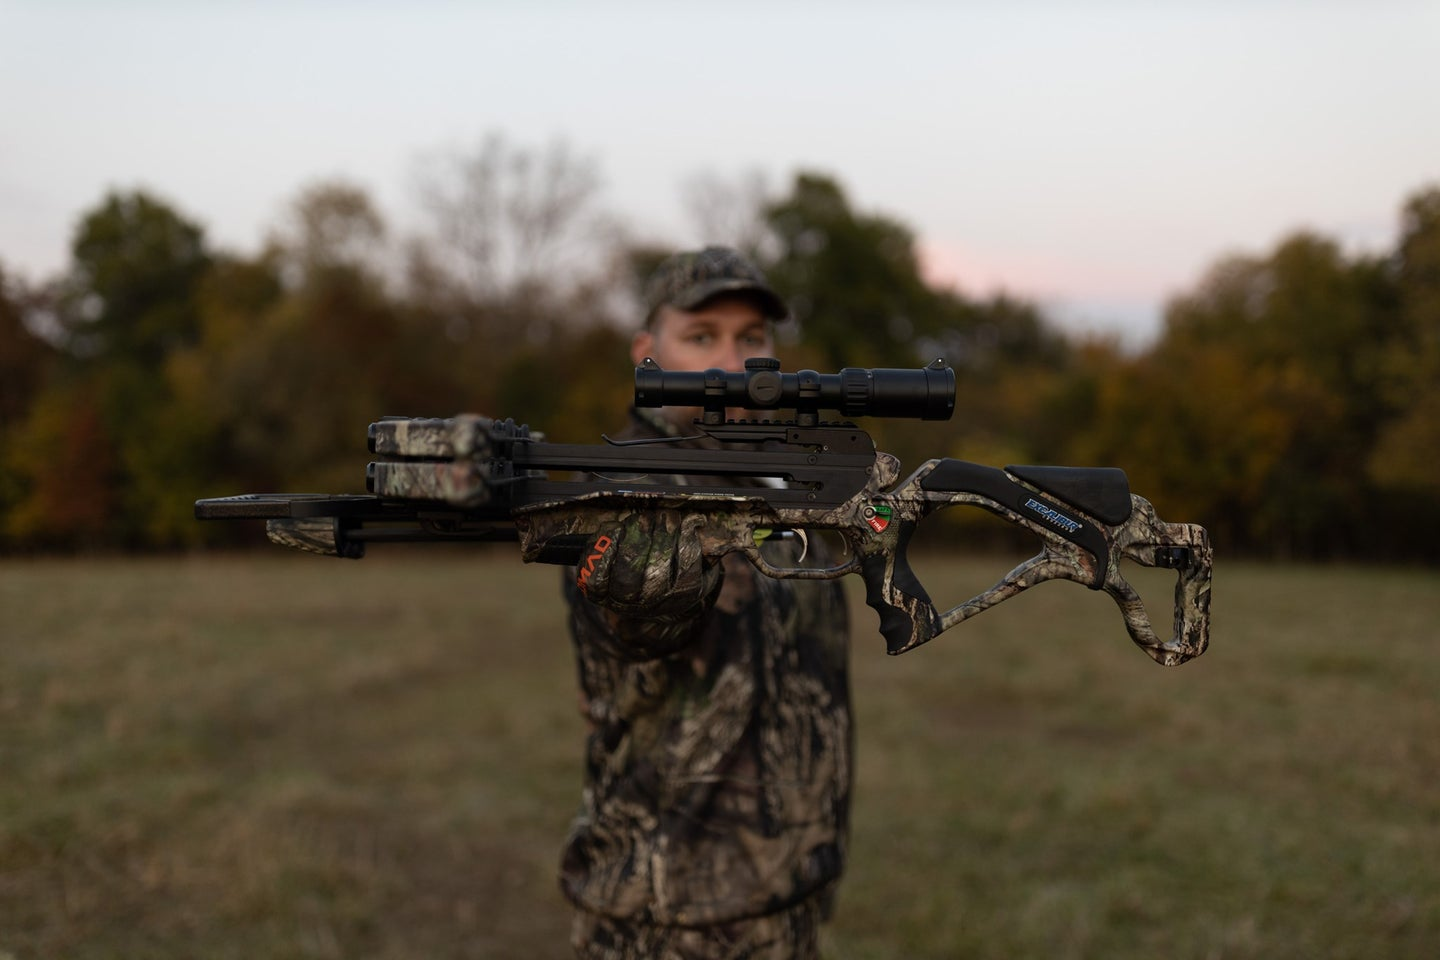 Crossbow parts explained by an expert.